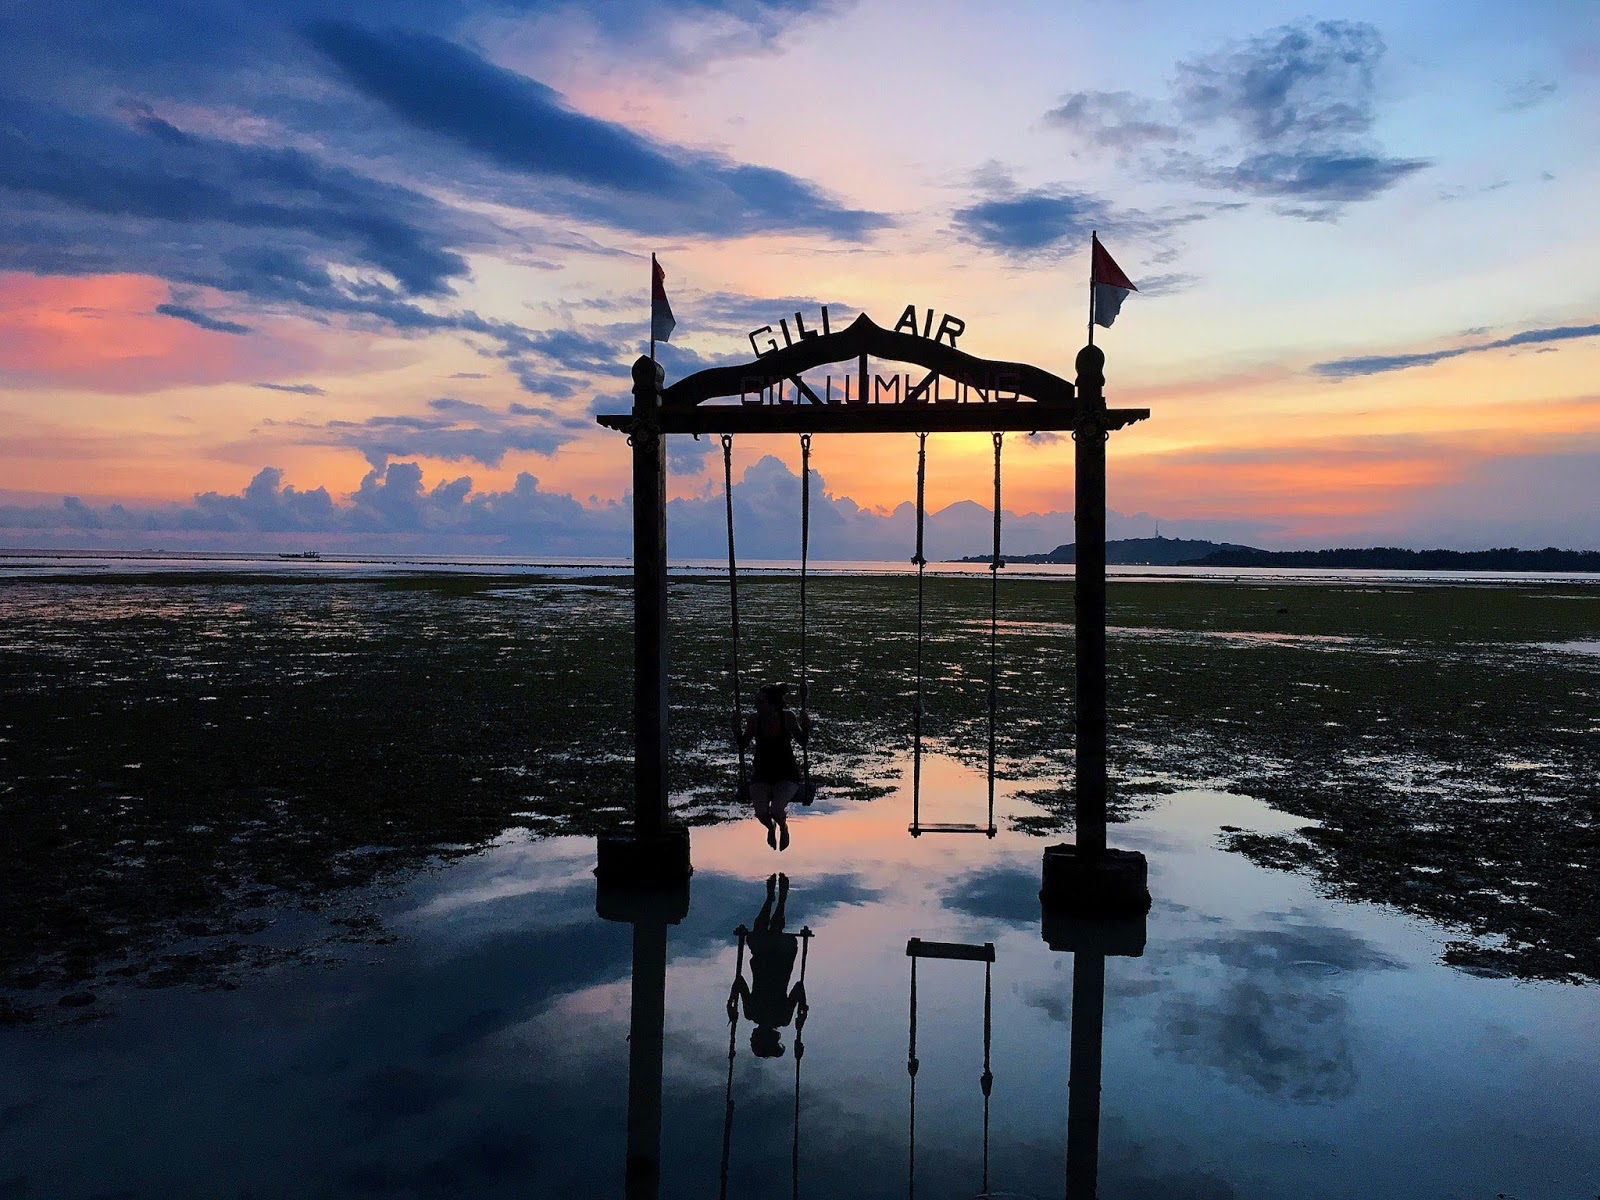 The Best Time Of Year To Visit Gili Air Island